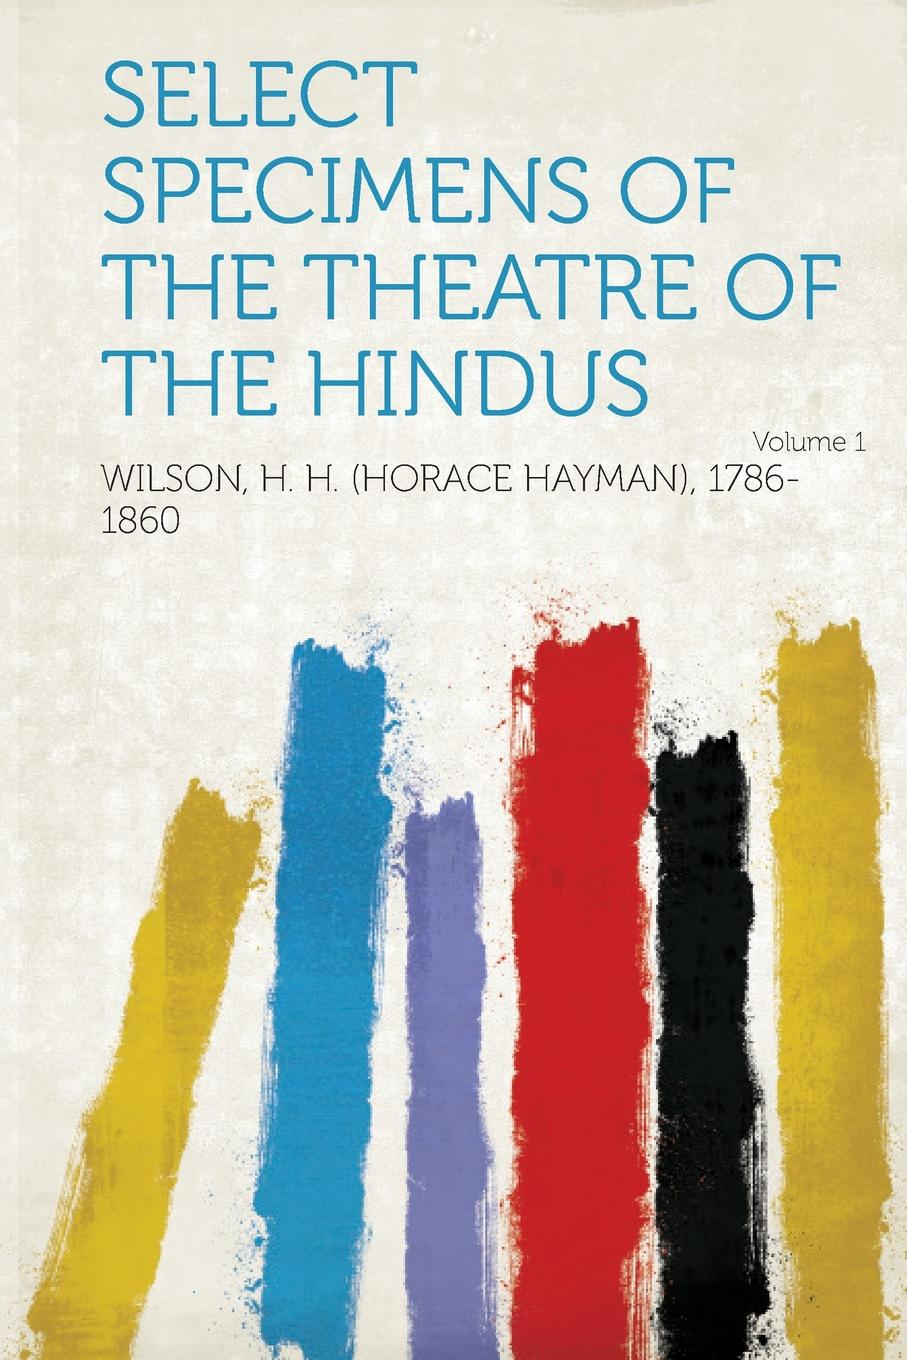 купить Select Specimens of the Theatre of the Hindus Volume 1 онлайн